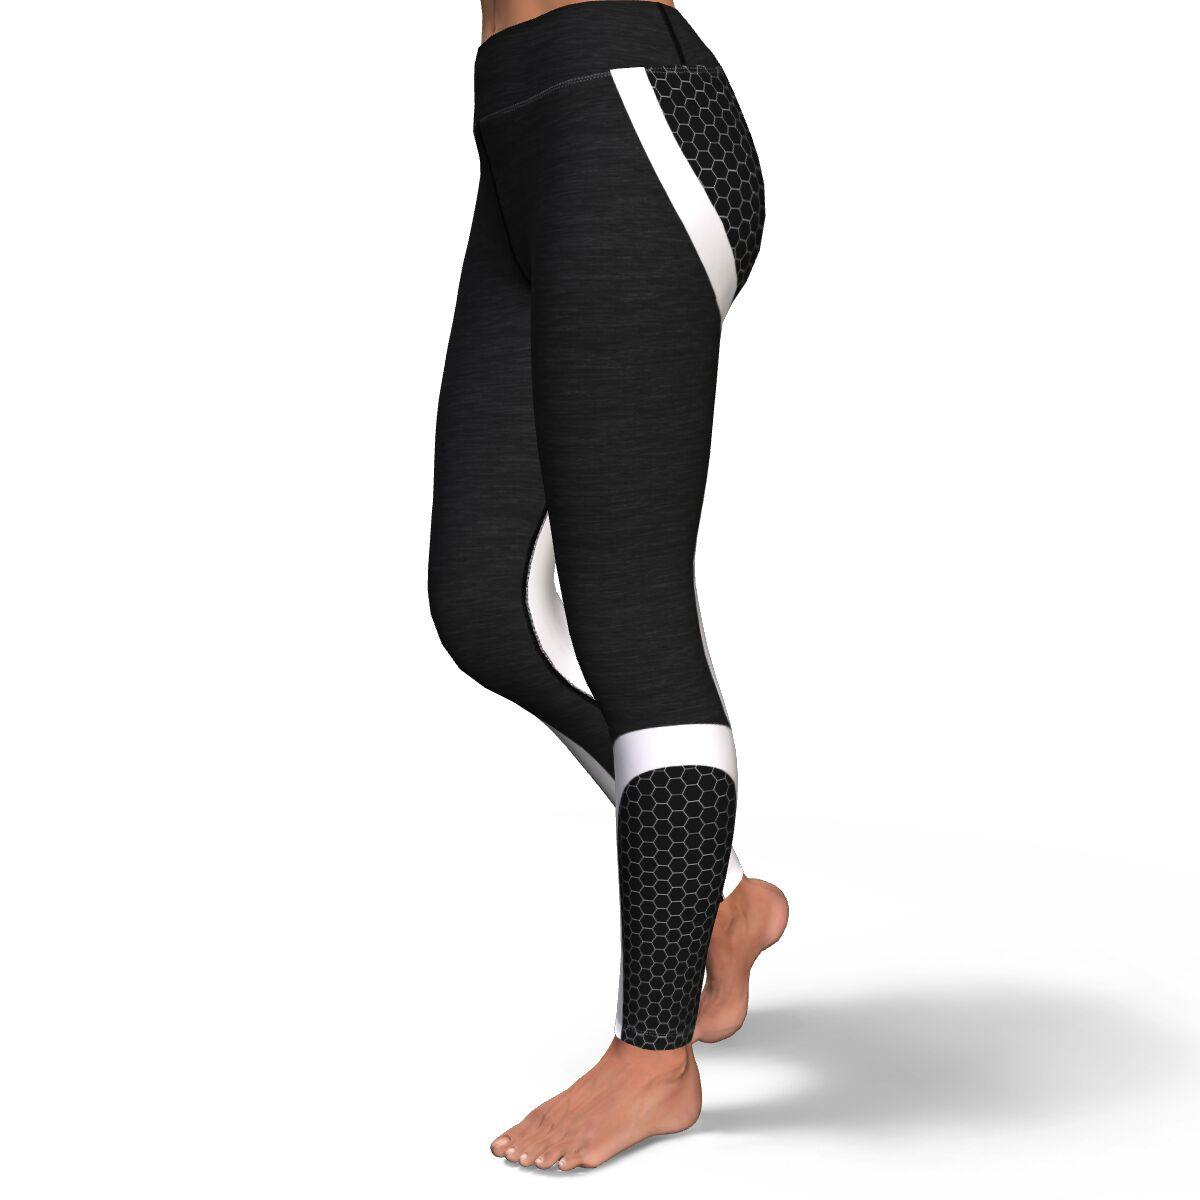 Black Honeycomb Premium Yoga Leggings - Manifestie